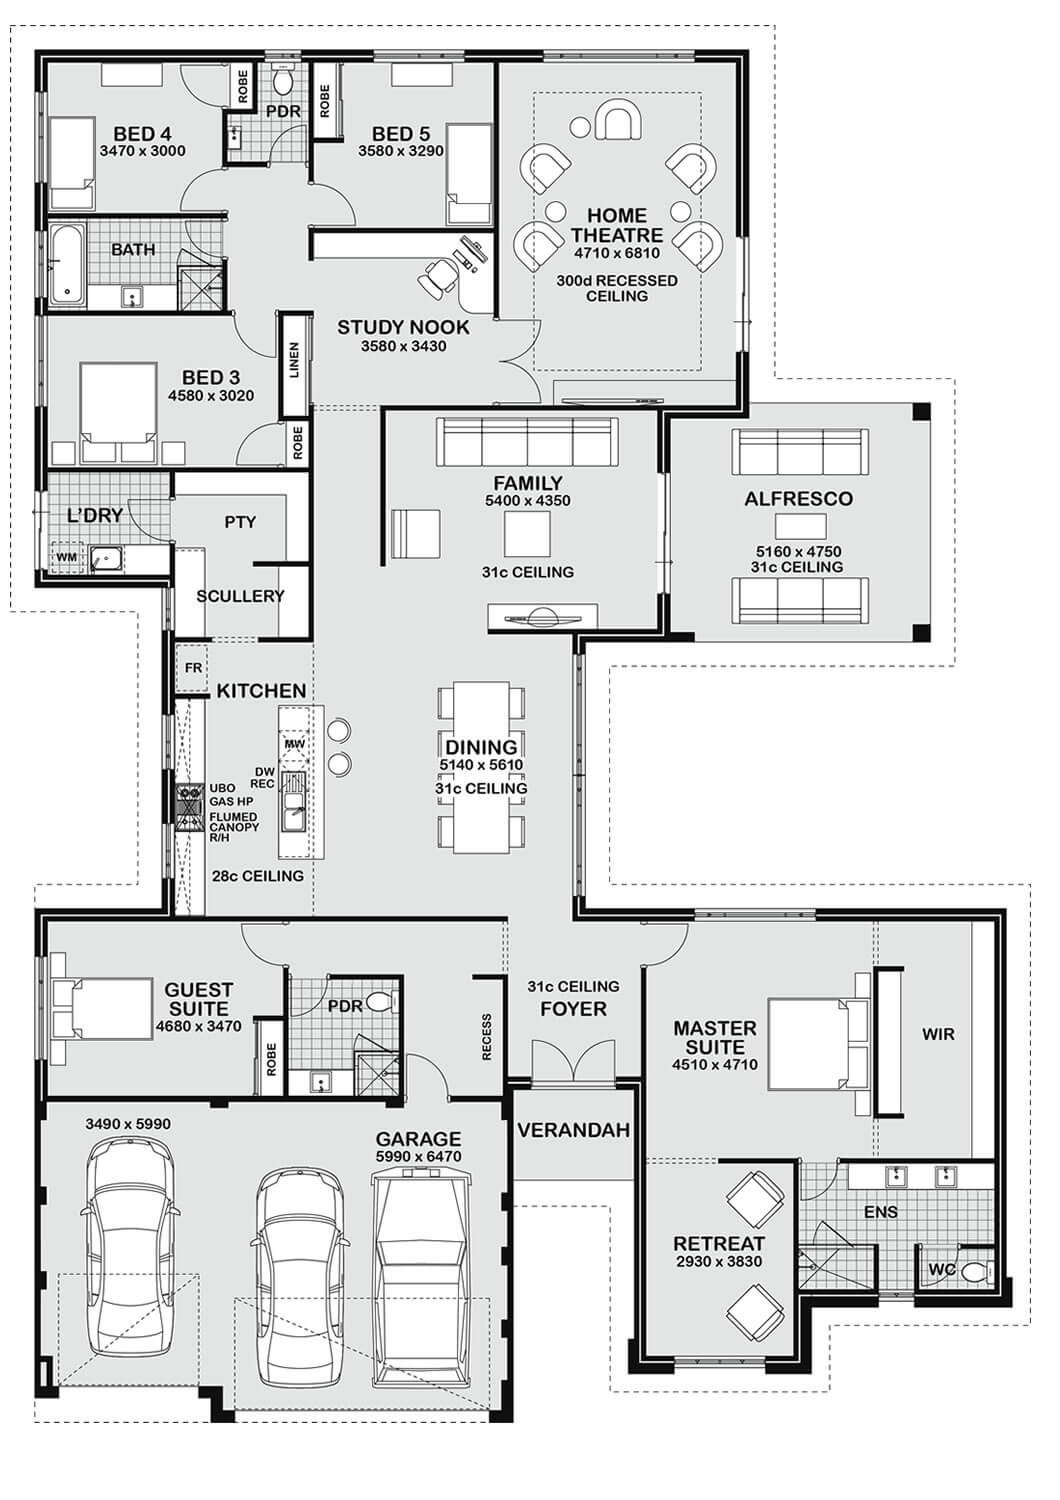 Floor plan friday 5 bedroom entertainer - Plan floor design ...